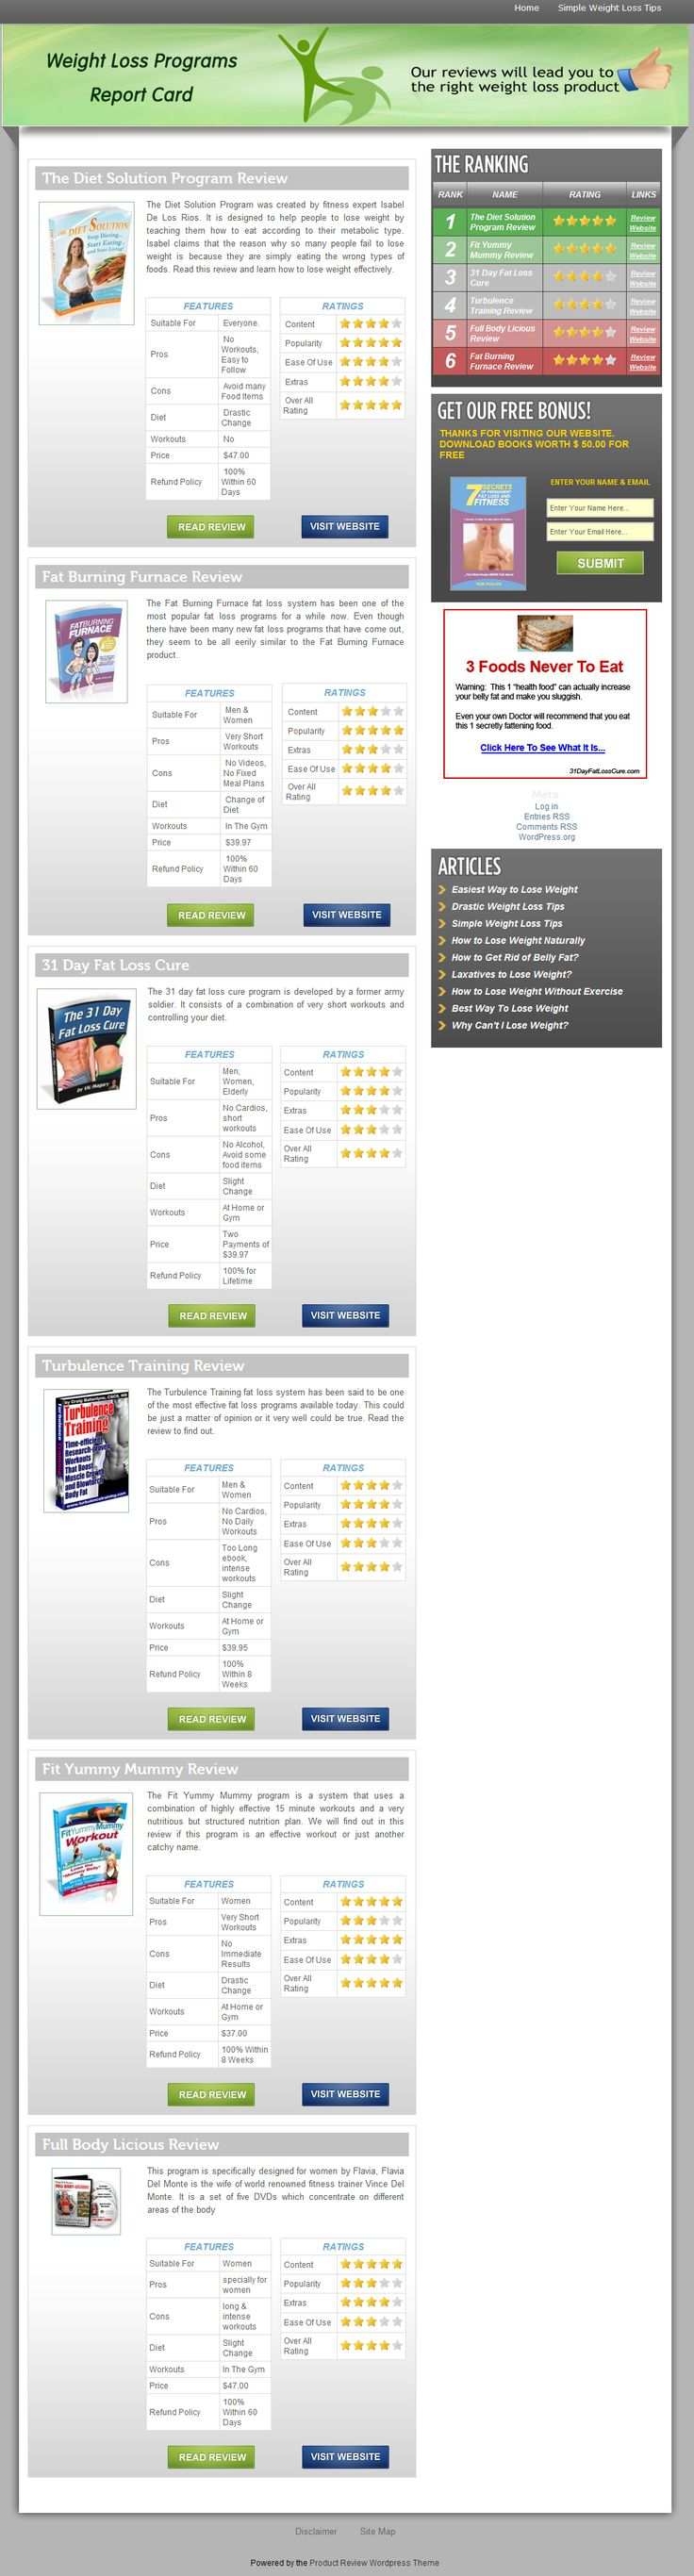 Read honest and candid reviews and ratings of different weight loss programs available online and chose the right one for yourself. The reviews clearly describe what the product is claiming, its content and the plus and minus points about the product >> how to lose weight effectively, best weight loss program, online weight loss programs --> www.weightlossprogramsreportcard.com